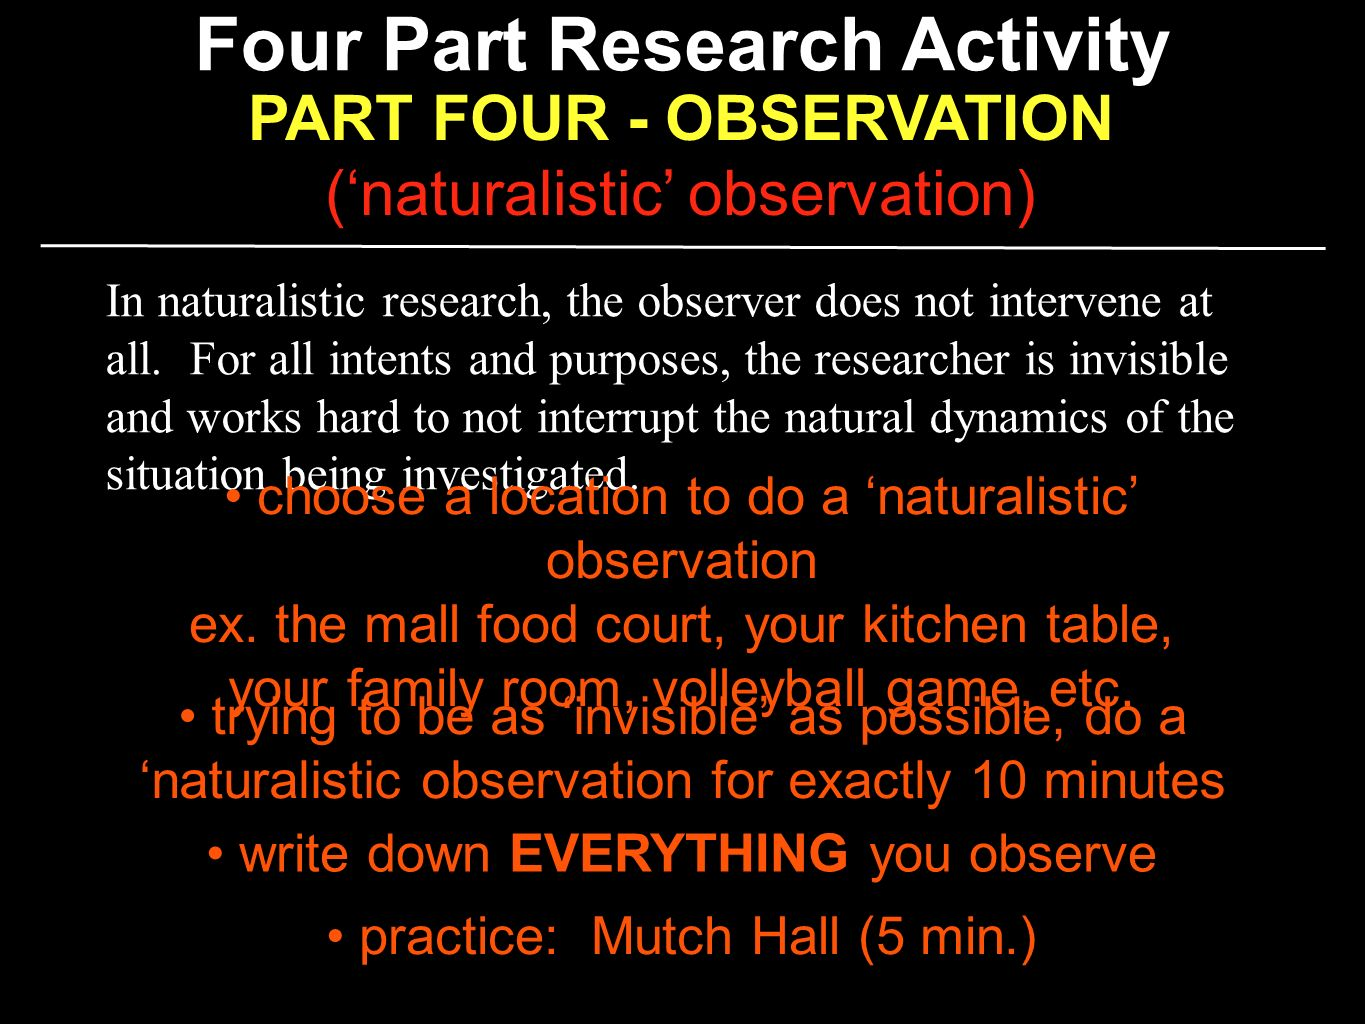 naturalistic observation on exercise Naturalistic observation naturalistic observation, also known as nonparticipant observation, has no intervention by a researcher it is simply studying behaviors that occur naturally in natural contexts, unlike the artificial environment of a controlled laboratory setting.